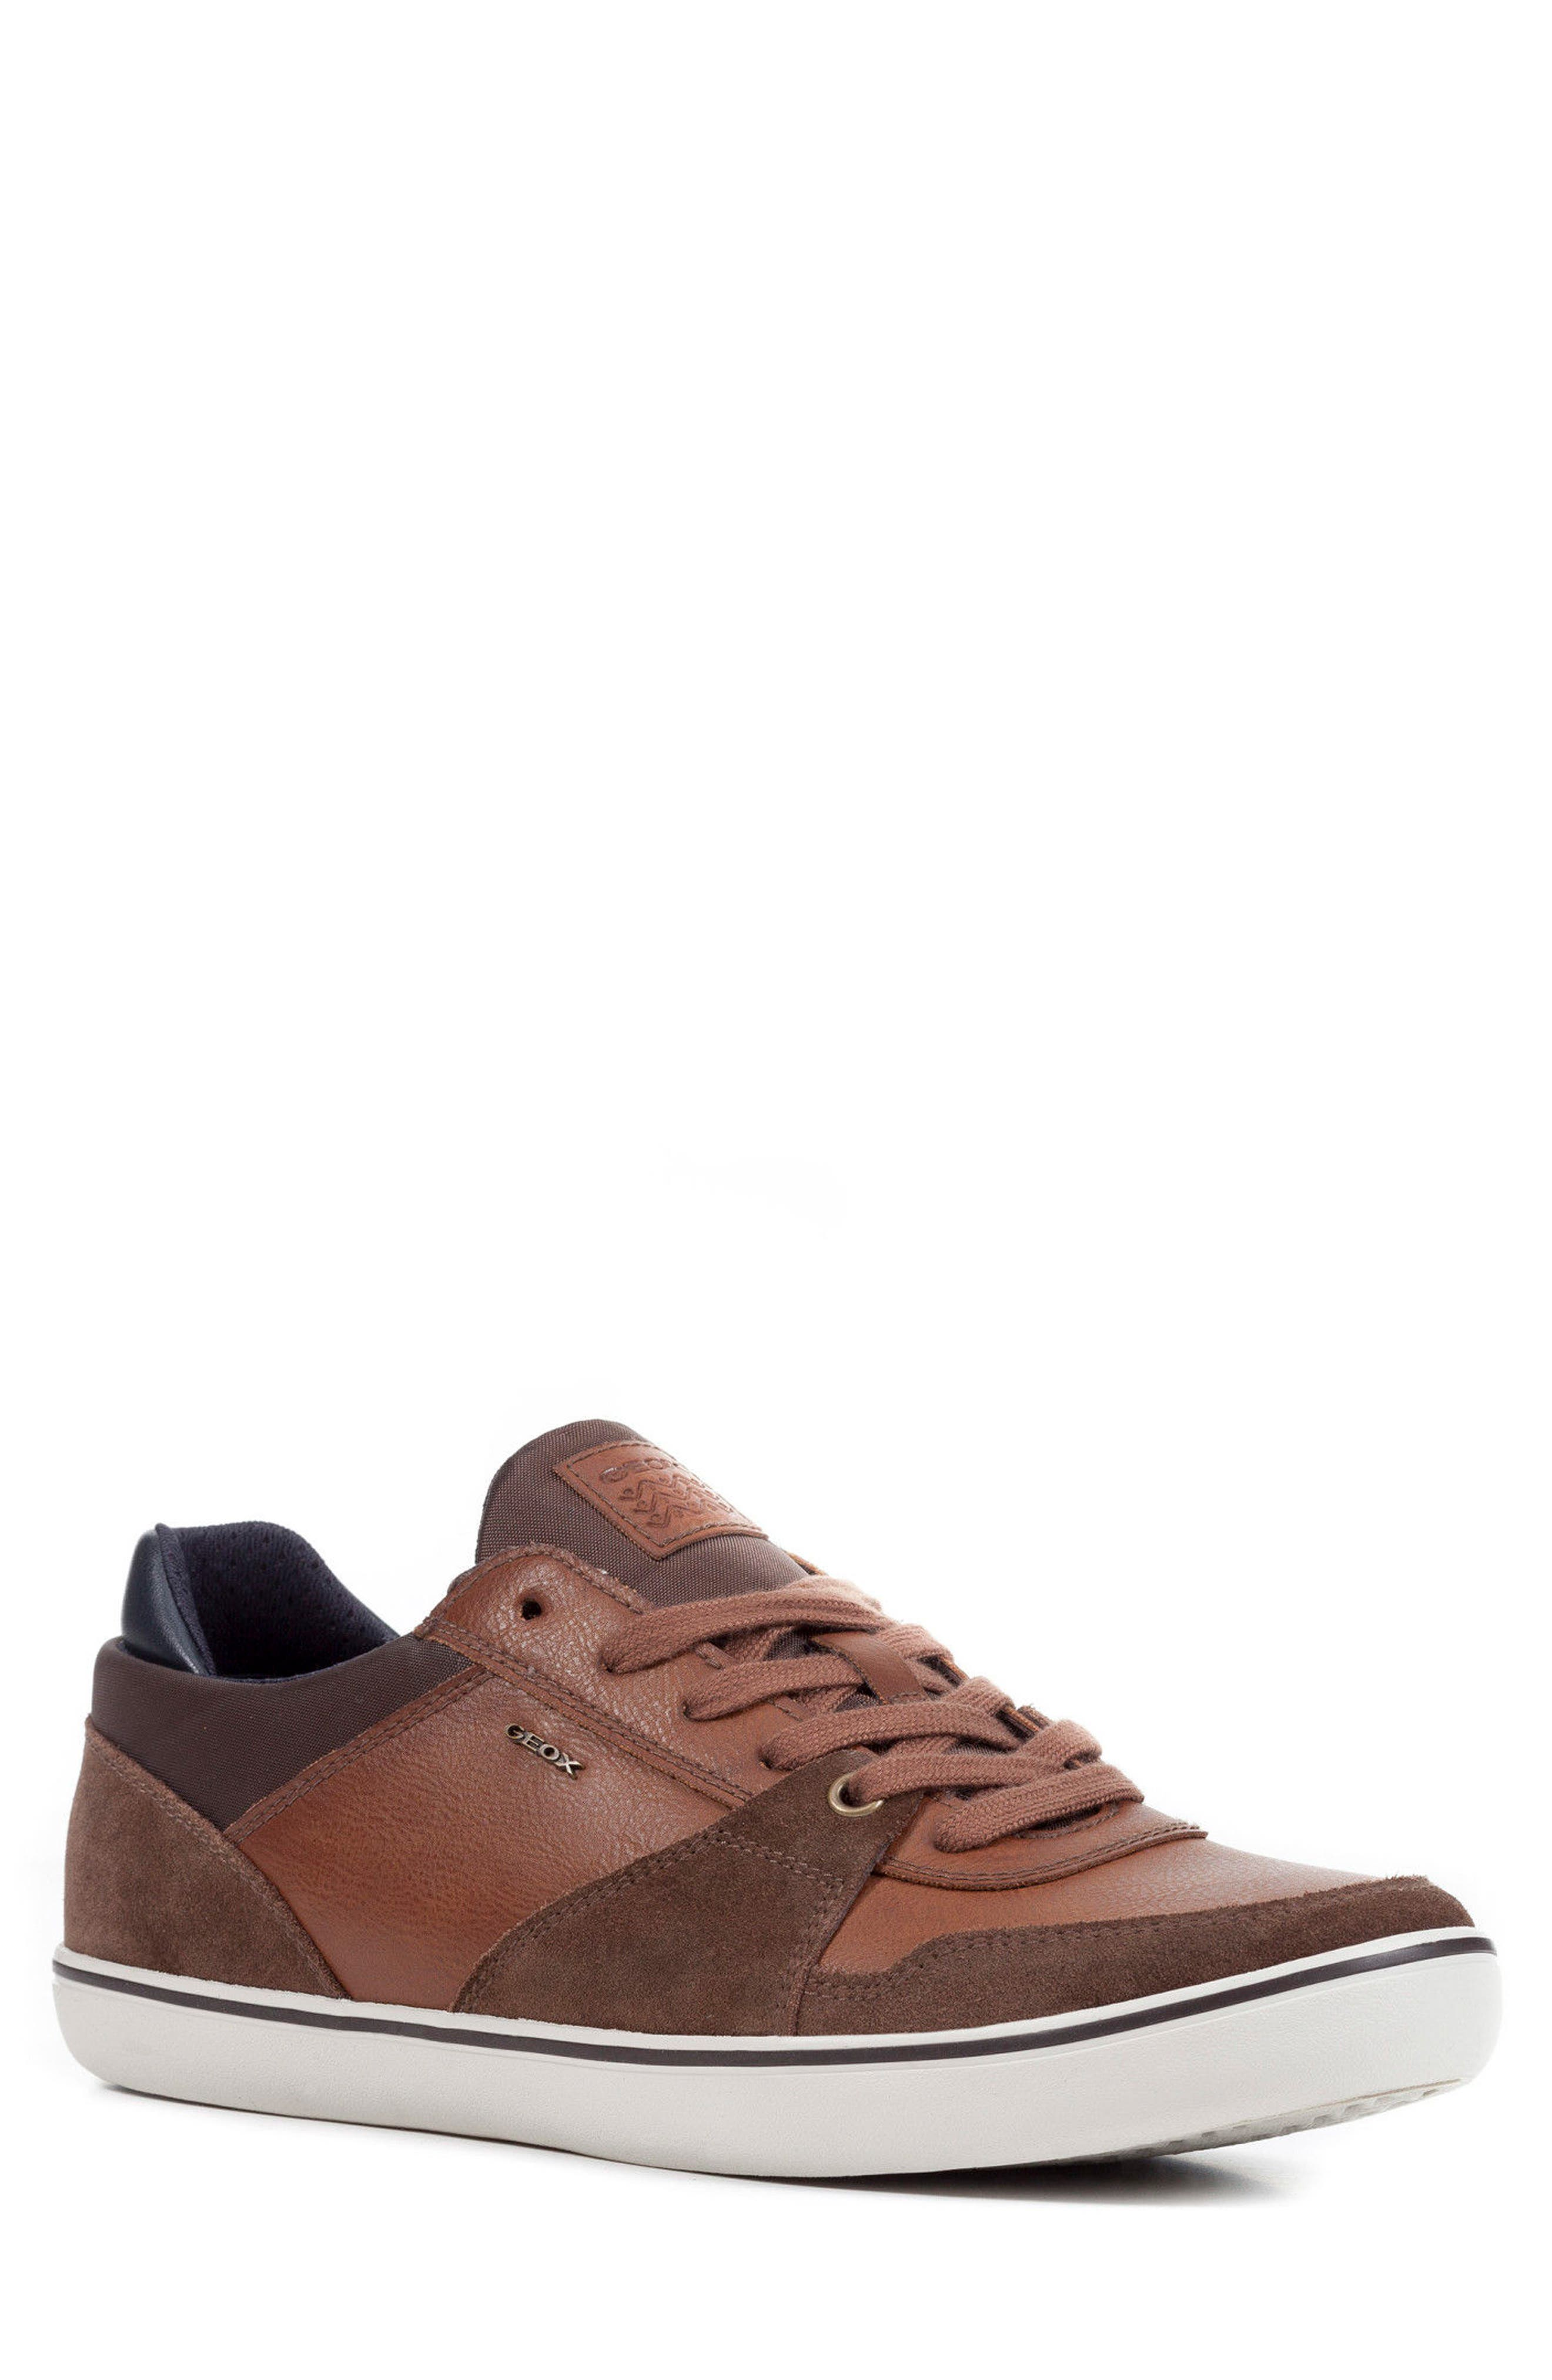 Box 27 Low-Top Sneaker,                         Main,                         color,